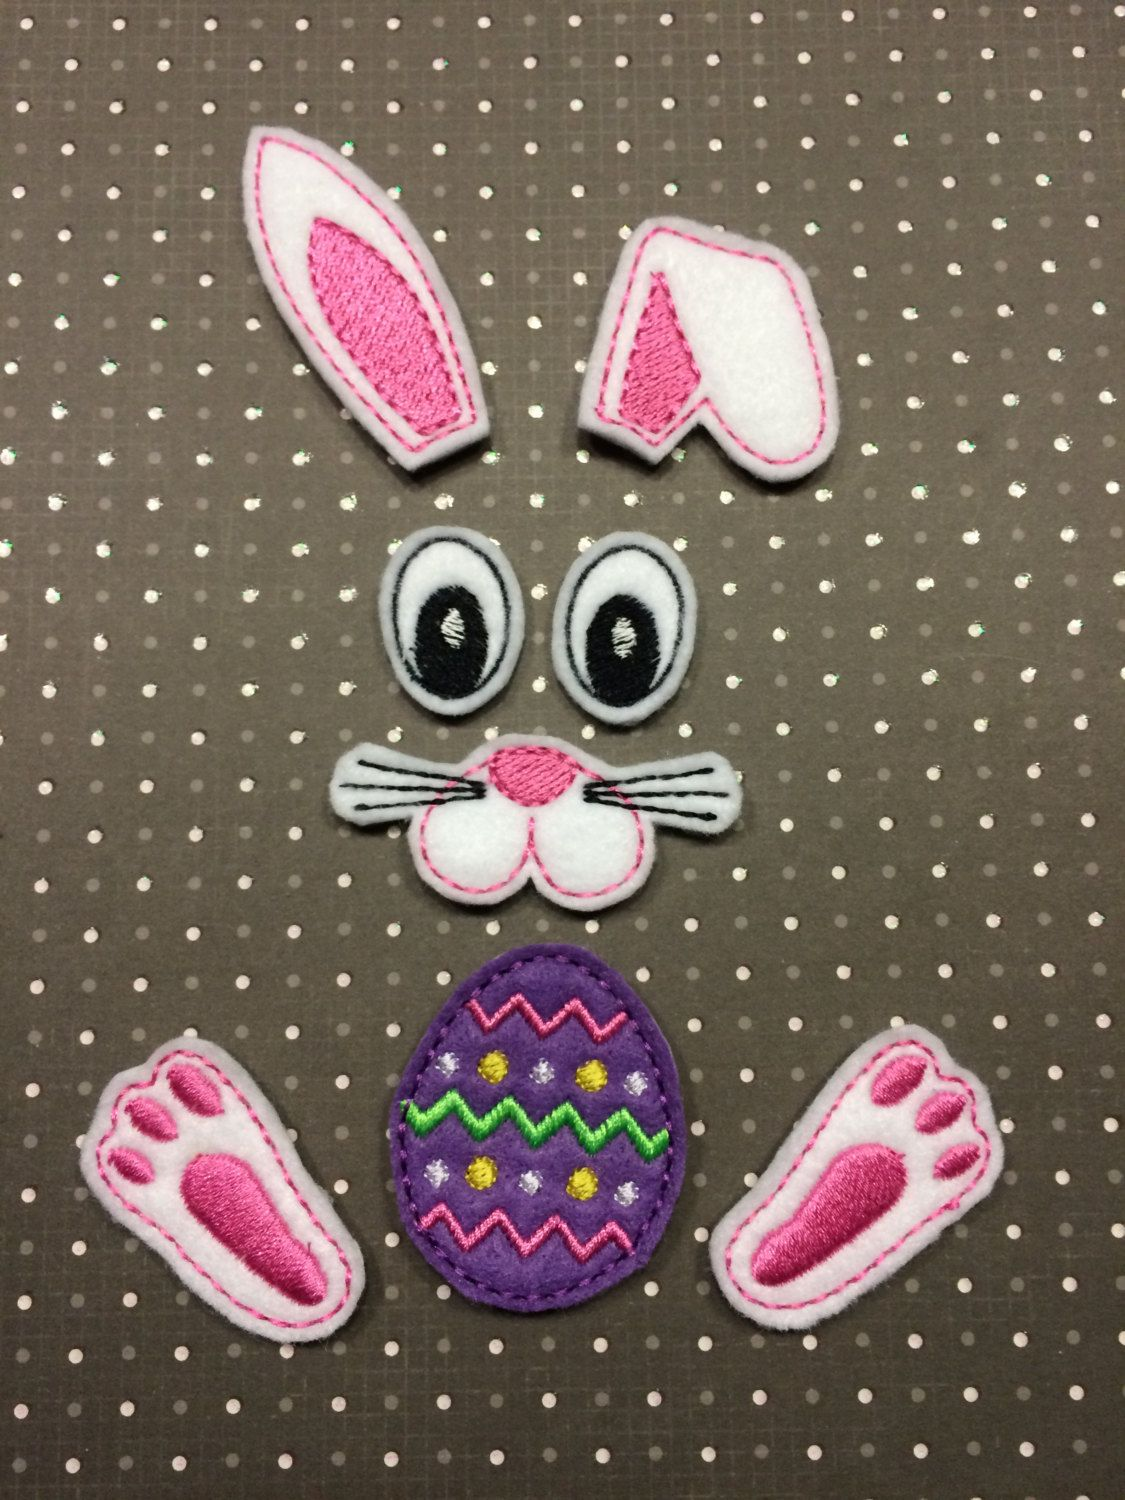 Oversize Bunny Hair Bow Parts Face Rabbit Feet Holding Egg Happy Easter Peter Cottontail Feltie Appliques Embroidered Felt Stitches By TheFarmChix